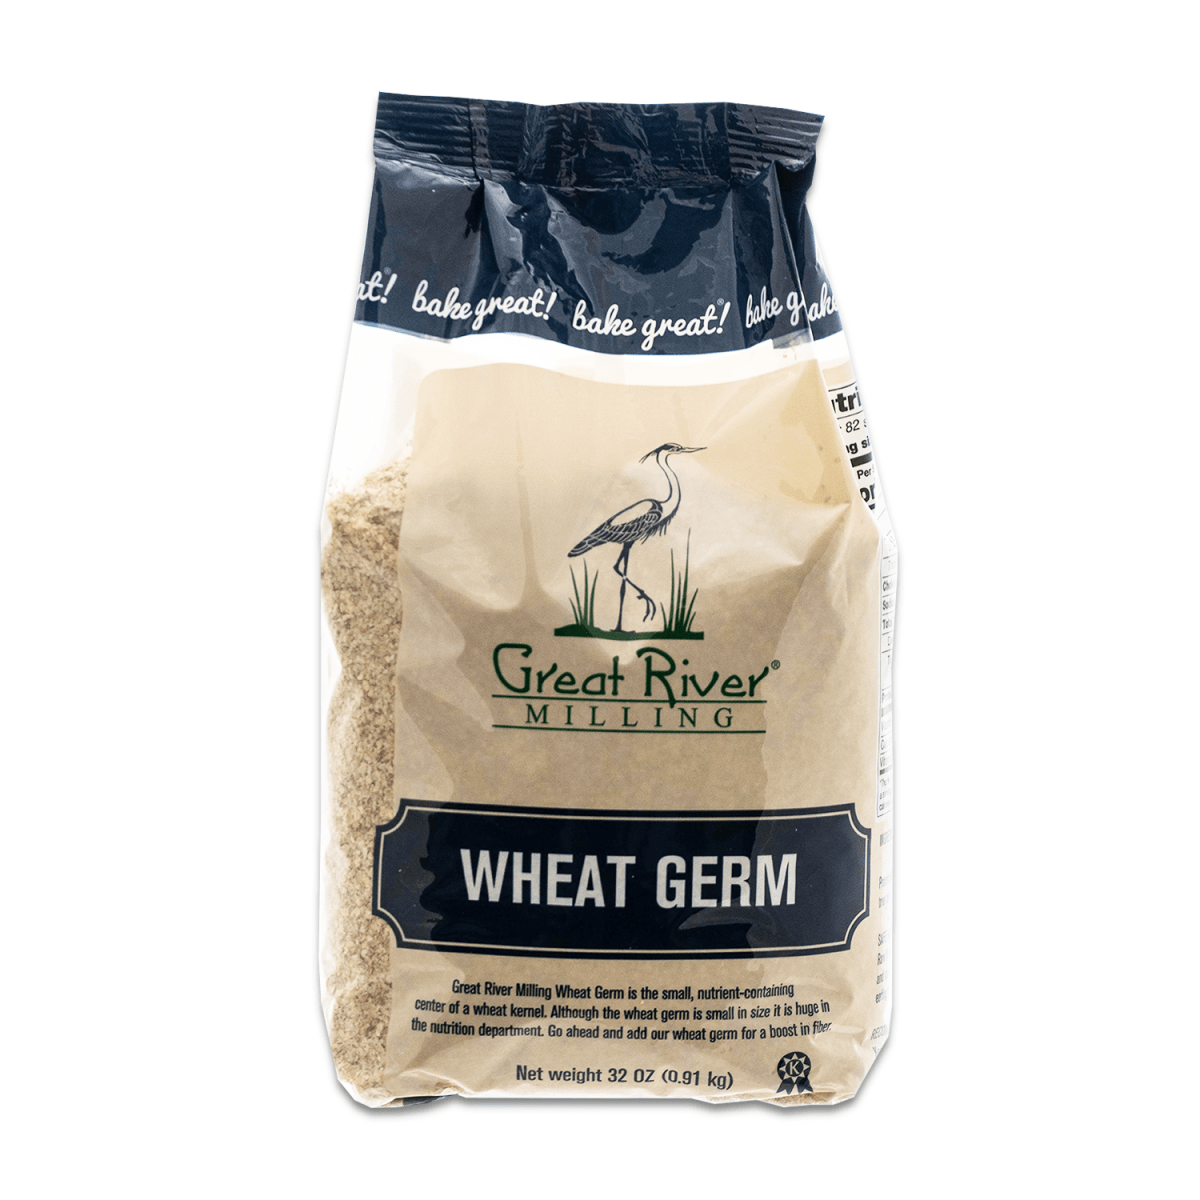 Great River Milling Wheat Germ